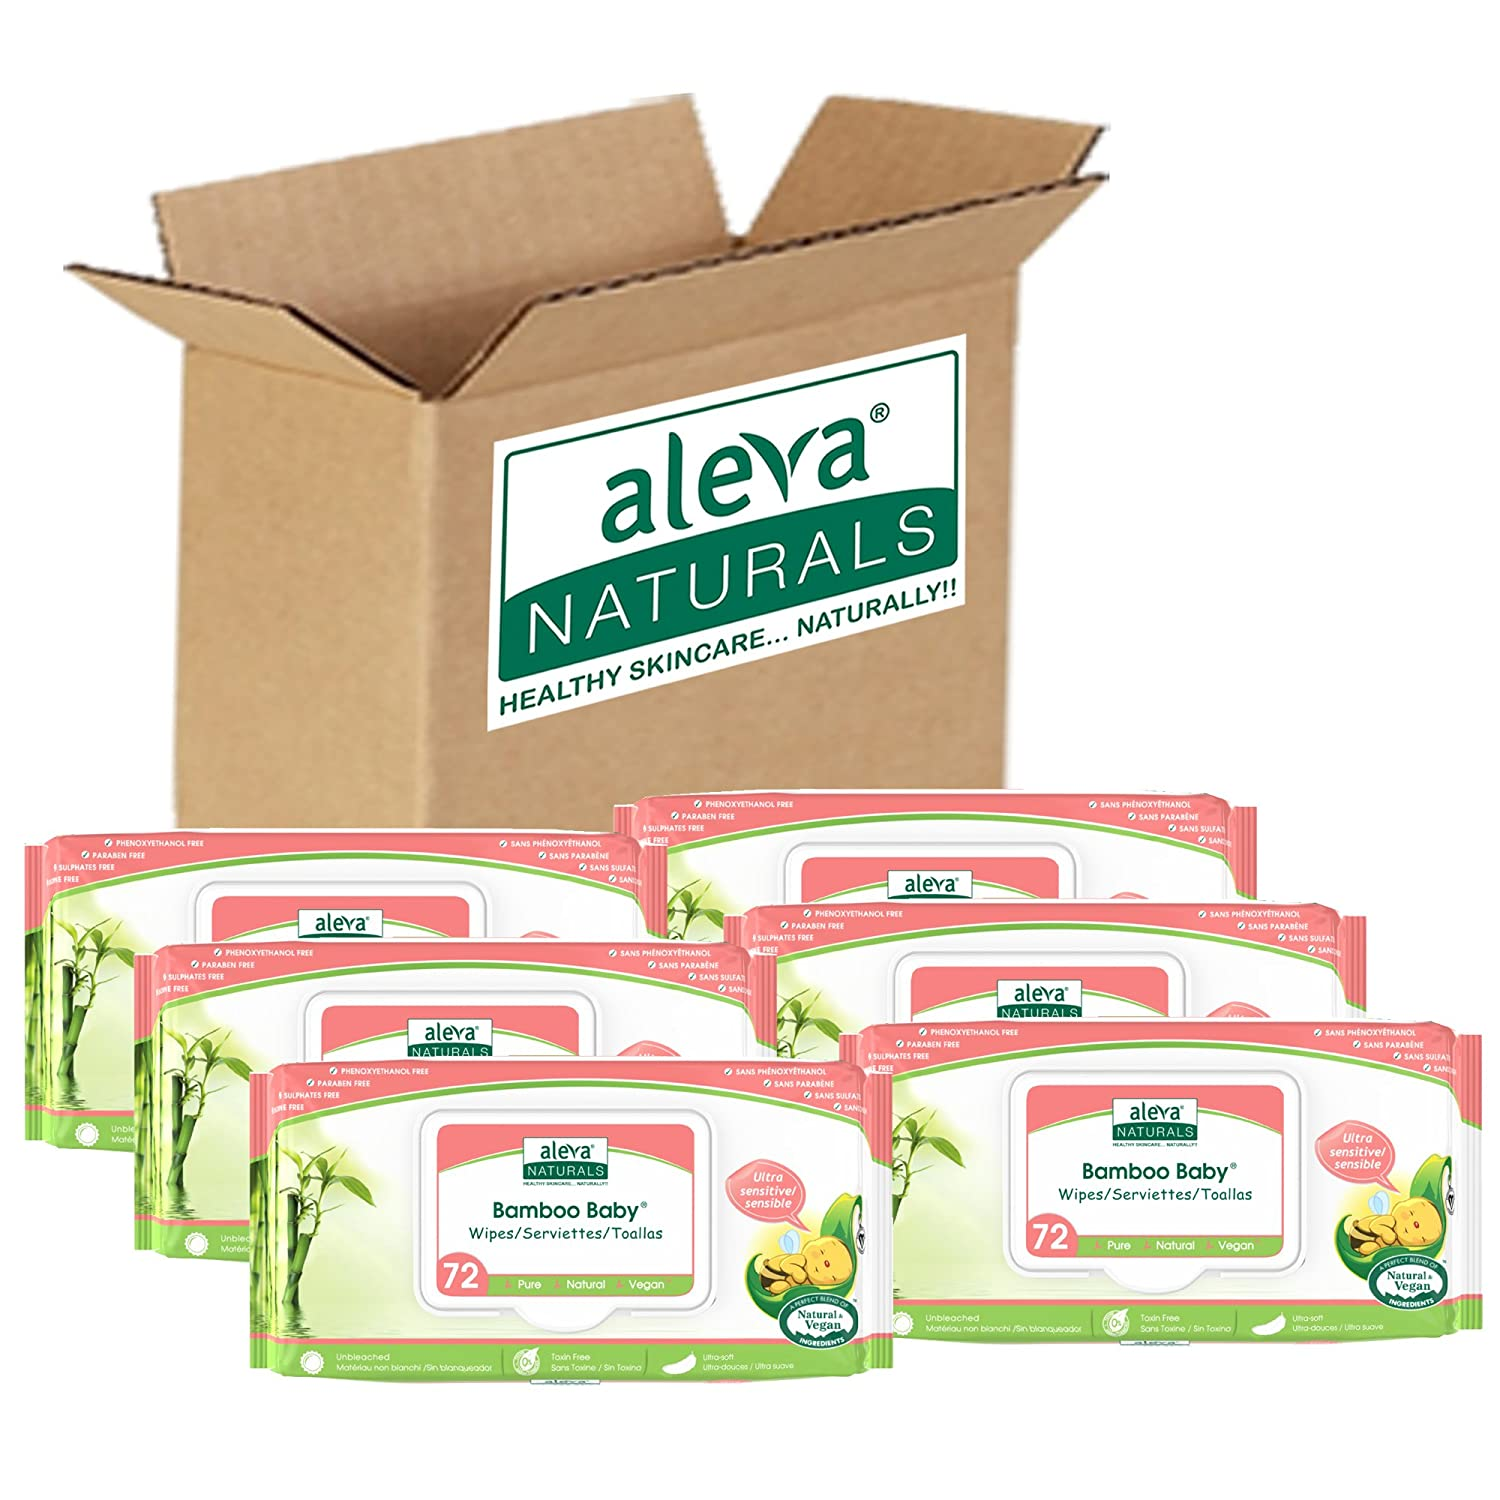 Amazon.com: Aleva Naturals Bamboo Baby Sensitive Wipes | Unscented | Extra Strong and Ultra Soft | Natural and Organic Ingredients | Certified Vegan | 6 ...